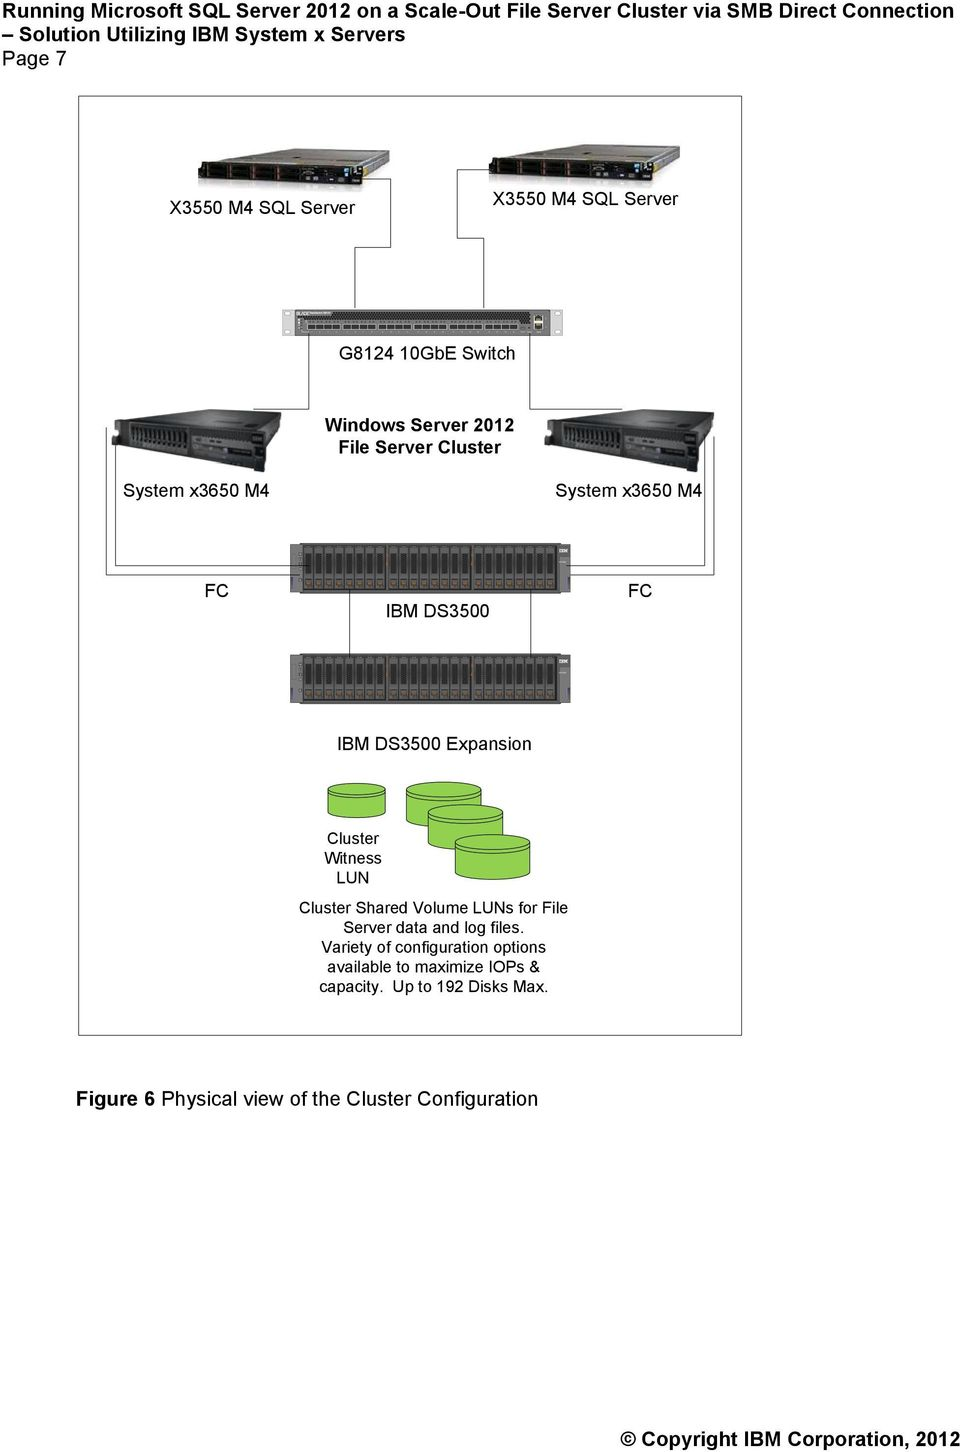 2012 File Server Cluster System x3650 M4 System x3650 M4 FC IBM DS3500 FC IBM DS3500 Expansion Cluster Witness LUN Cluster Shared Volume LUNs for File Server